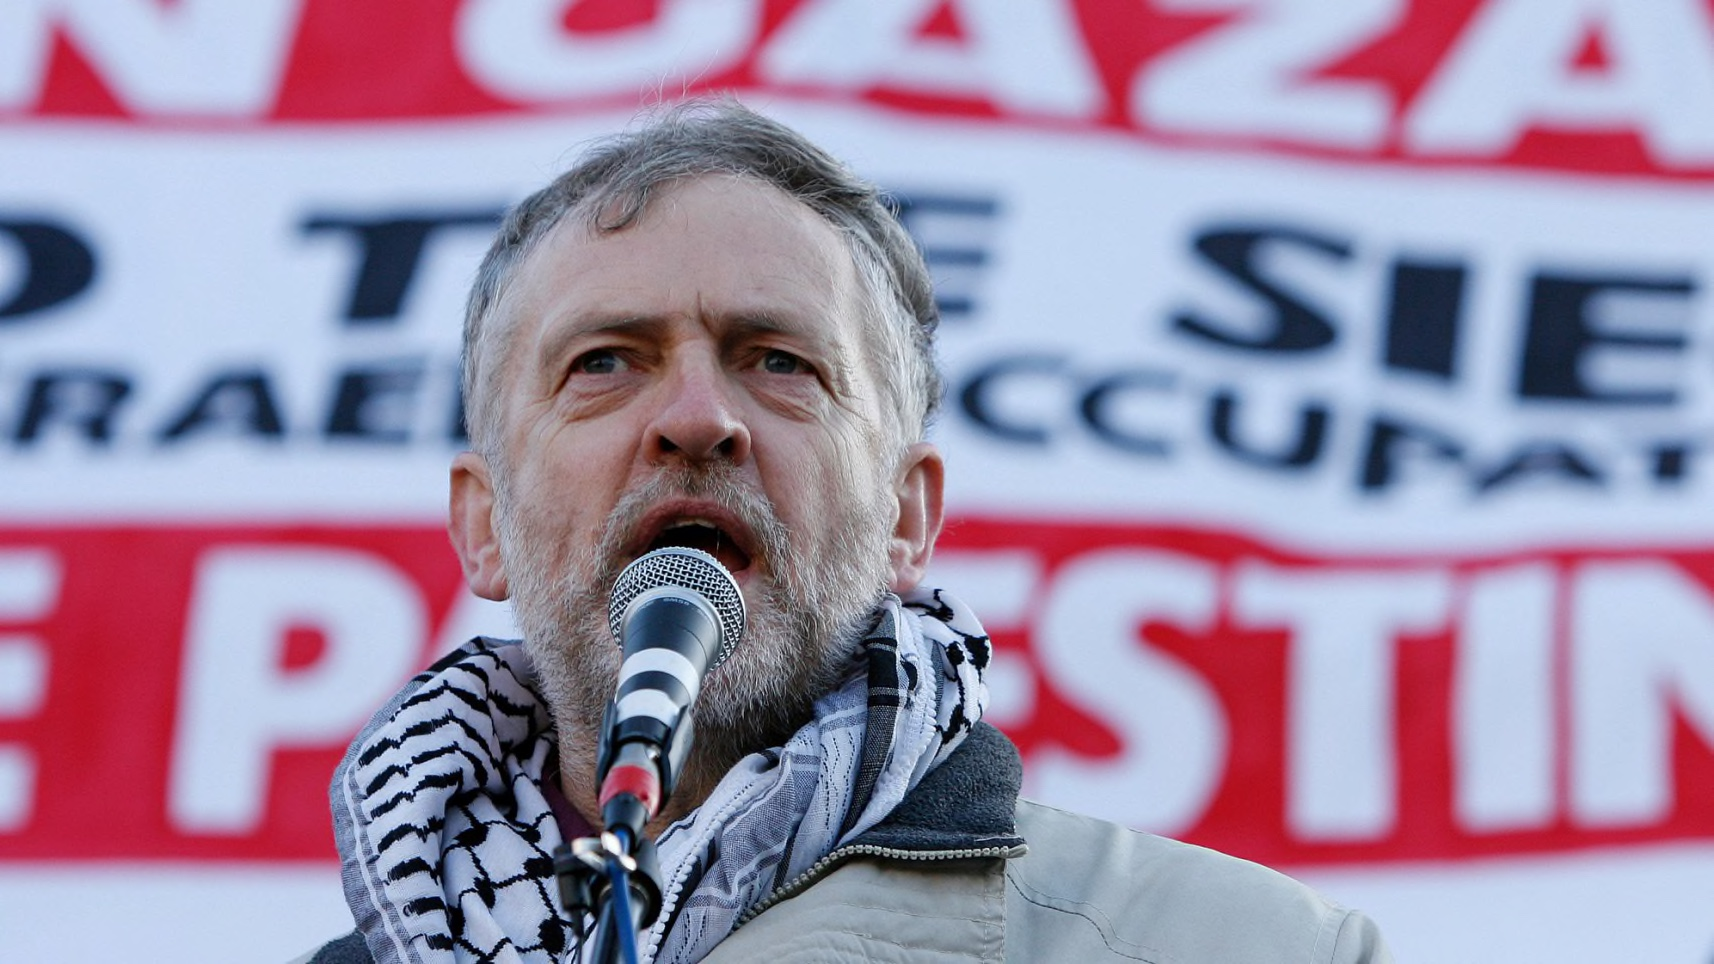 Opinion 'Pro-Palestinian' Jeremy Corbyn Has Never Really Cared About Muslim Suffering